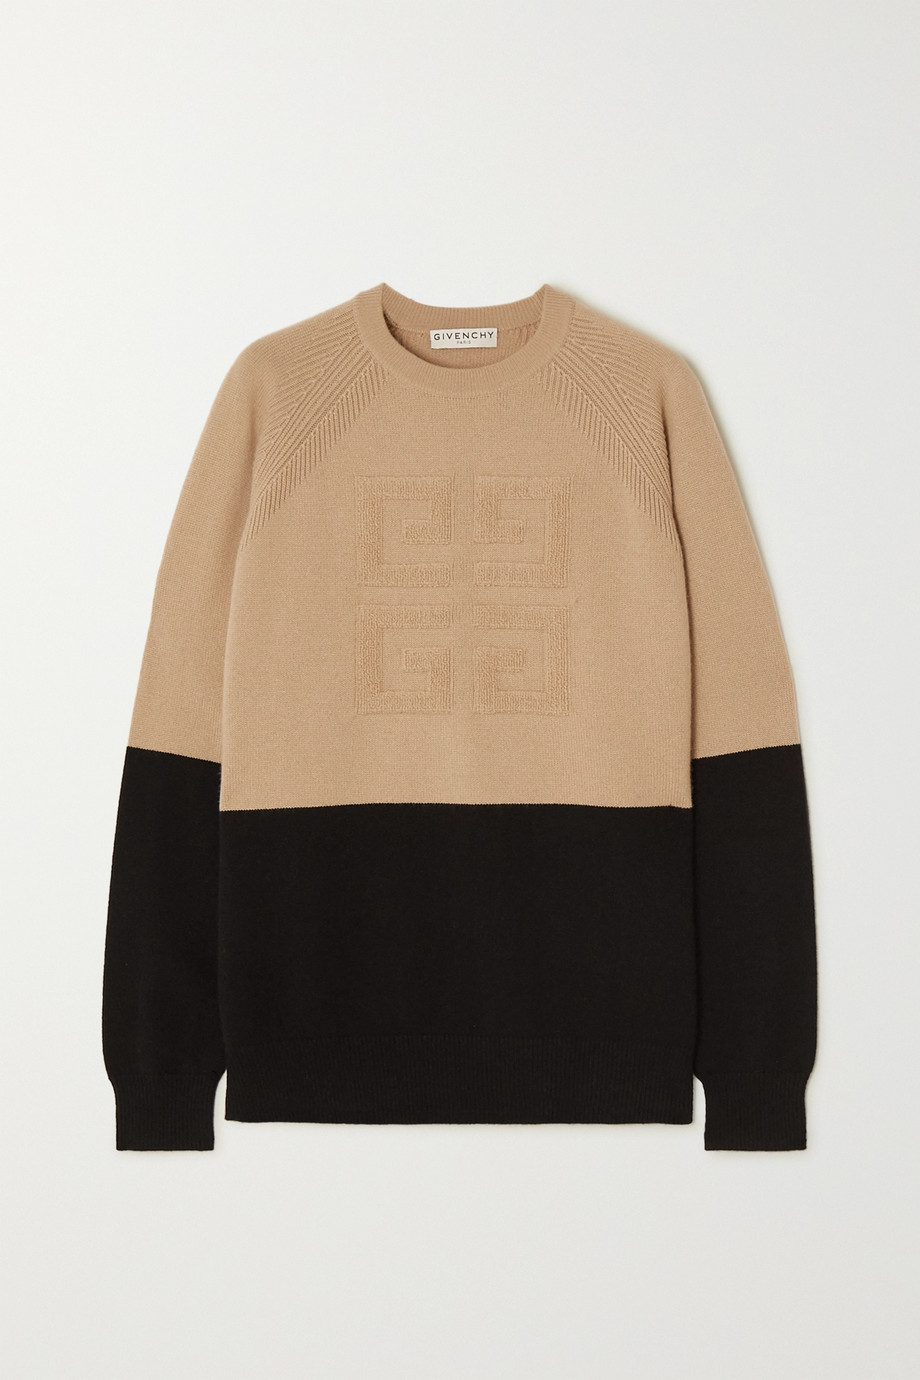 Givenchy Two-tone cashmere sweater